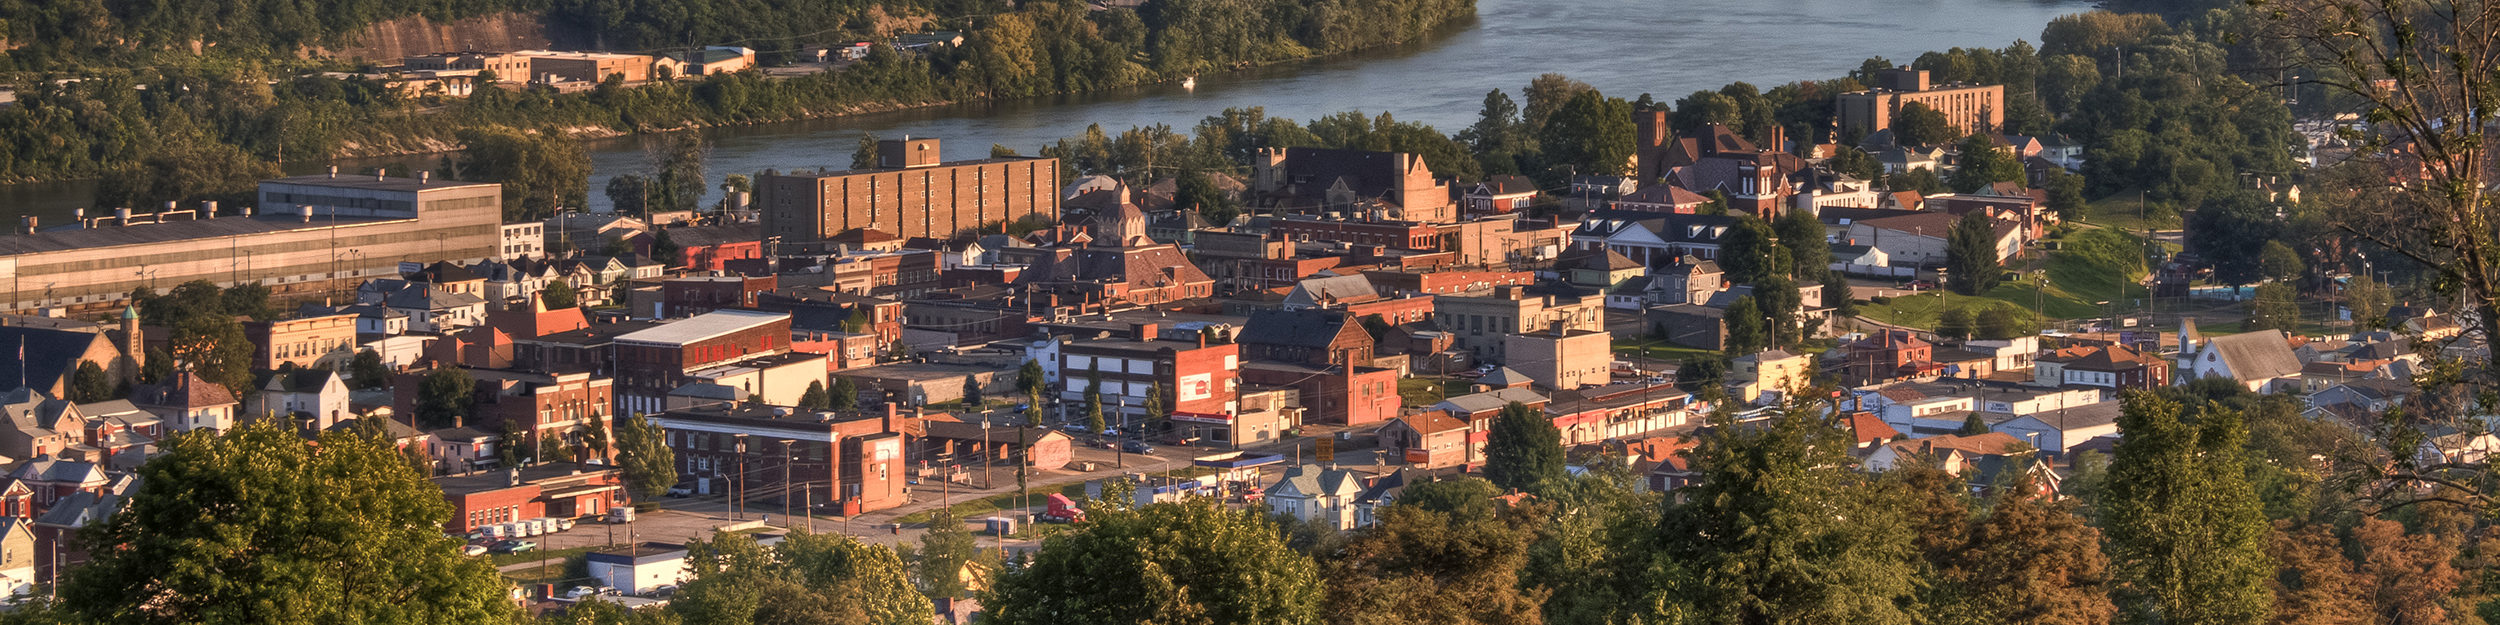 City of Martins Ferry